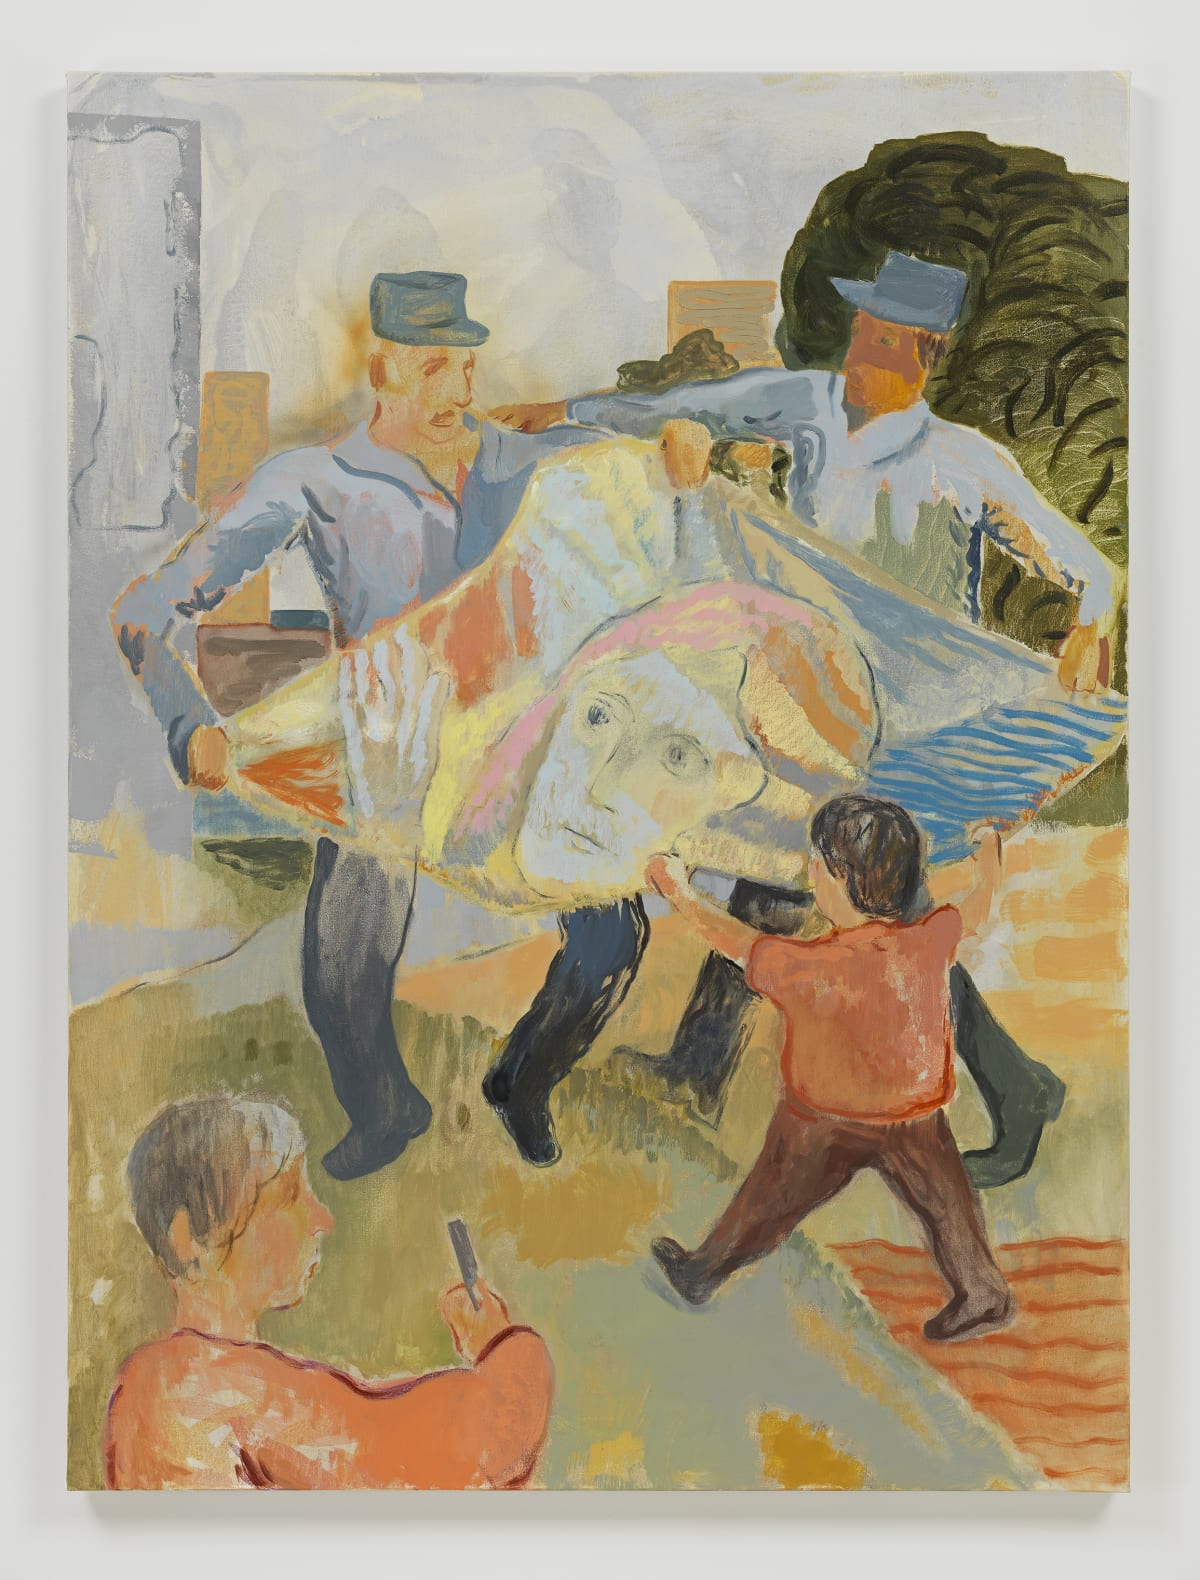 Sam Bornstein, Beach Blanket with Soldiers and Child, 2019